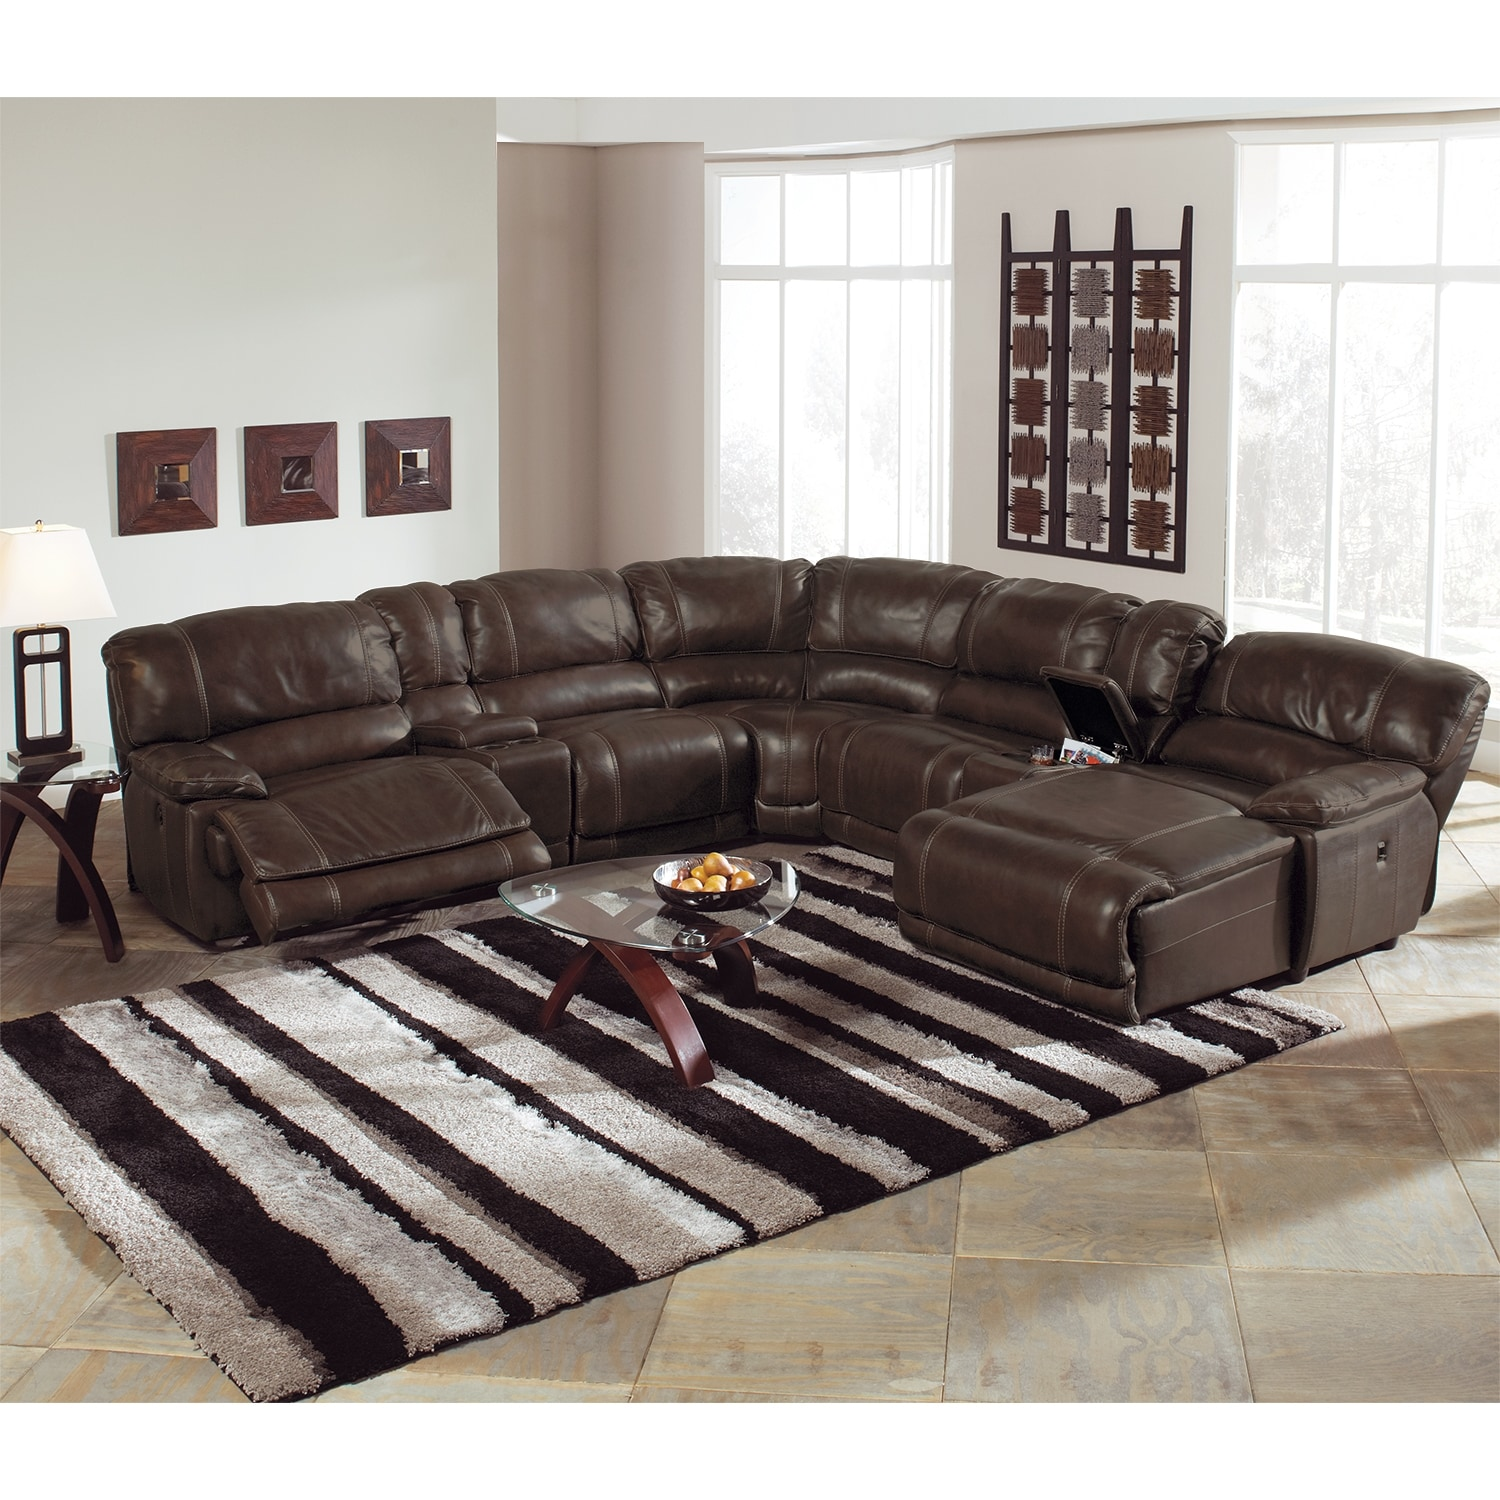 st malo 6 piece power reclining sectional with right facing chaise brown value city. Black Bedroom Furniture Sets. Home Design Ideas